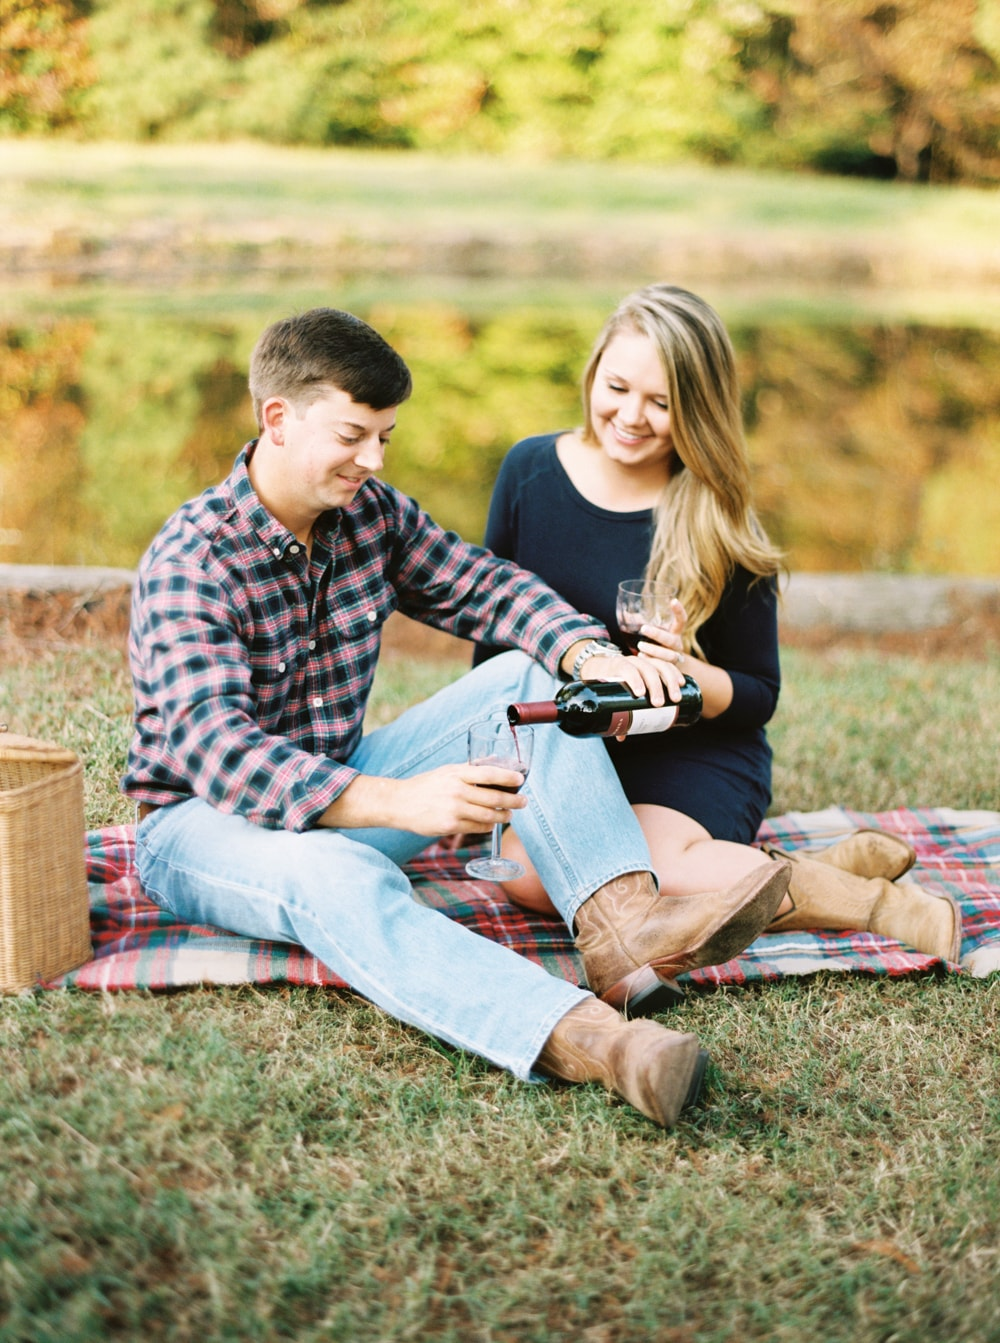 north-carolina-engagement-photography-47-min.jpg